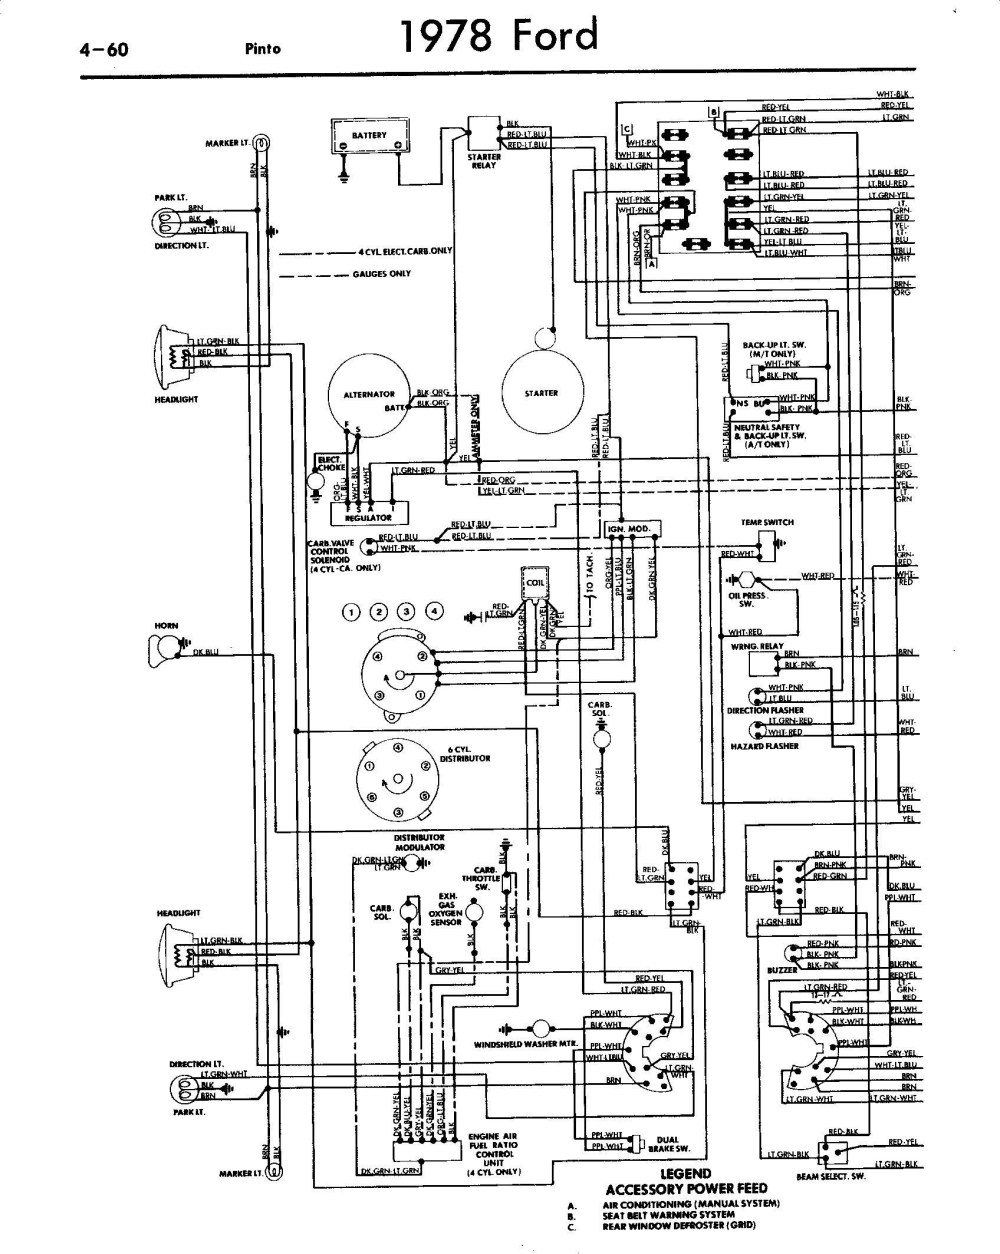 medium resolution of 1995 ford f150 5 0 engine diagram 01 7 3 engine wire diagram wiring info